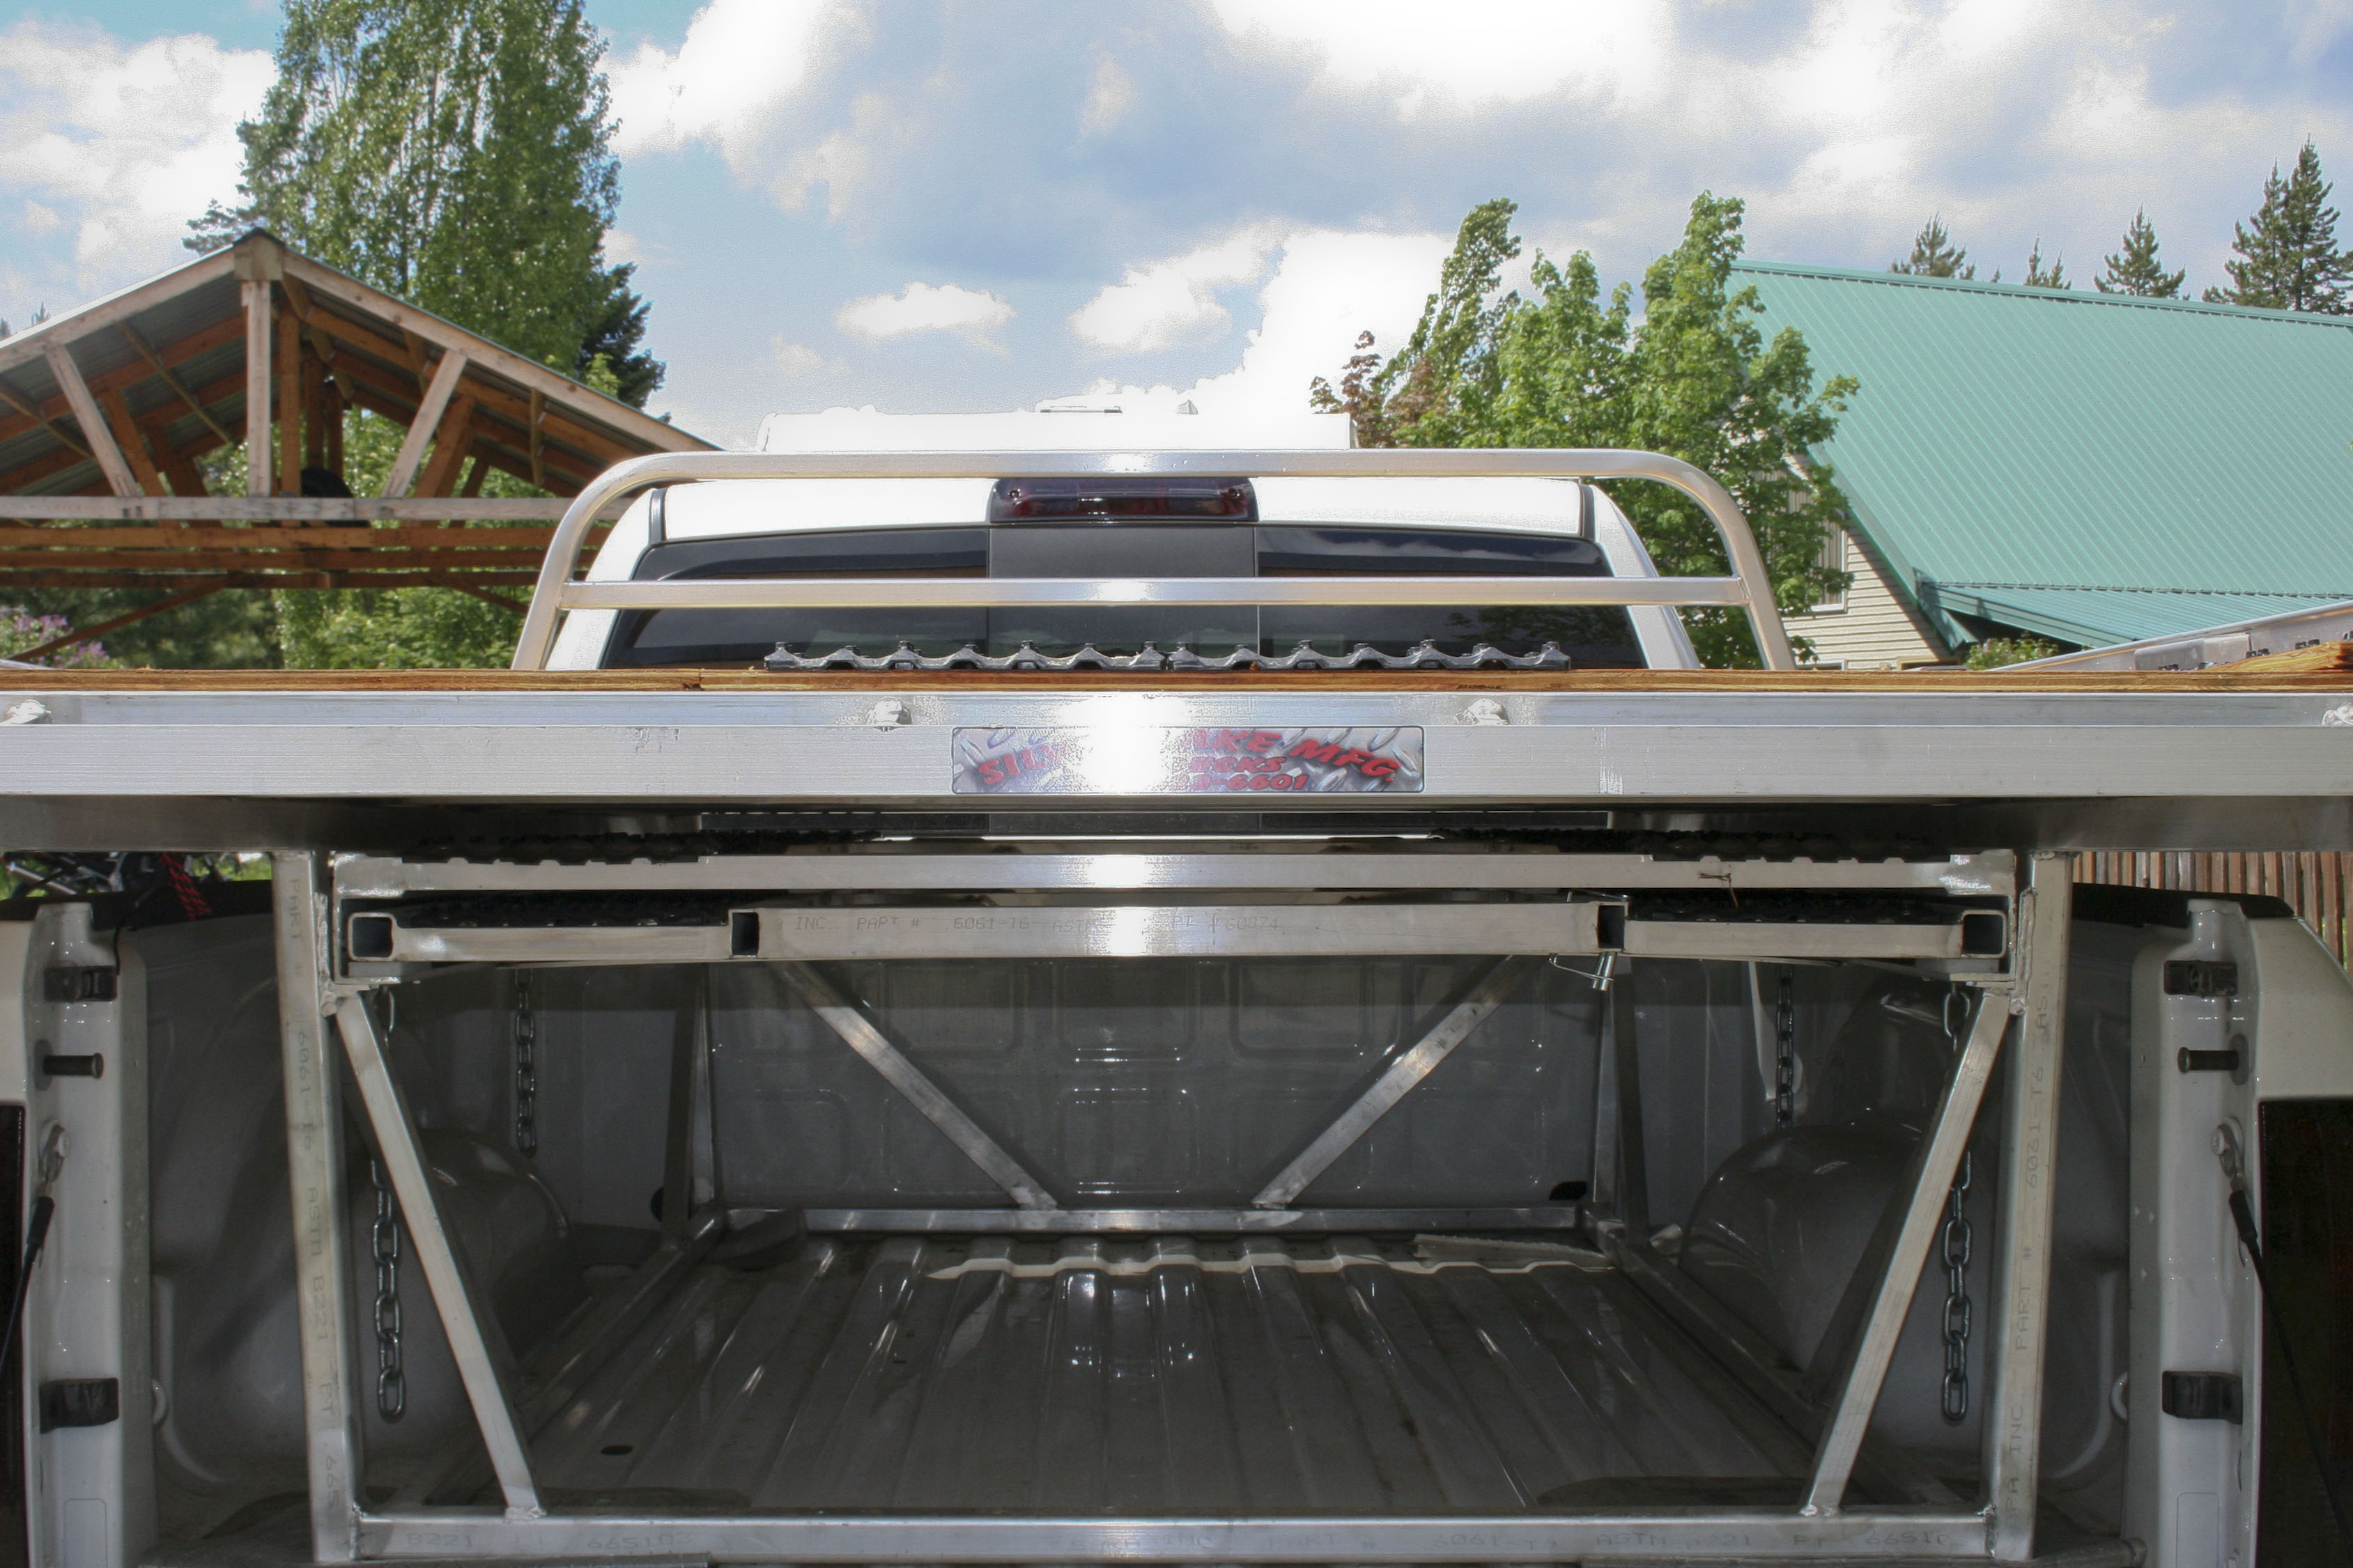 Deluxe Model Sled Deck SilverLake Manufacturing